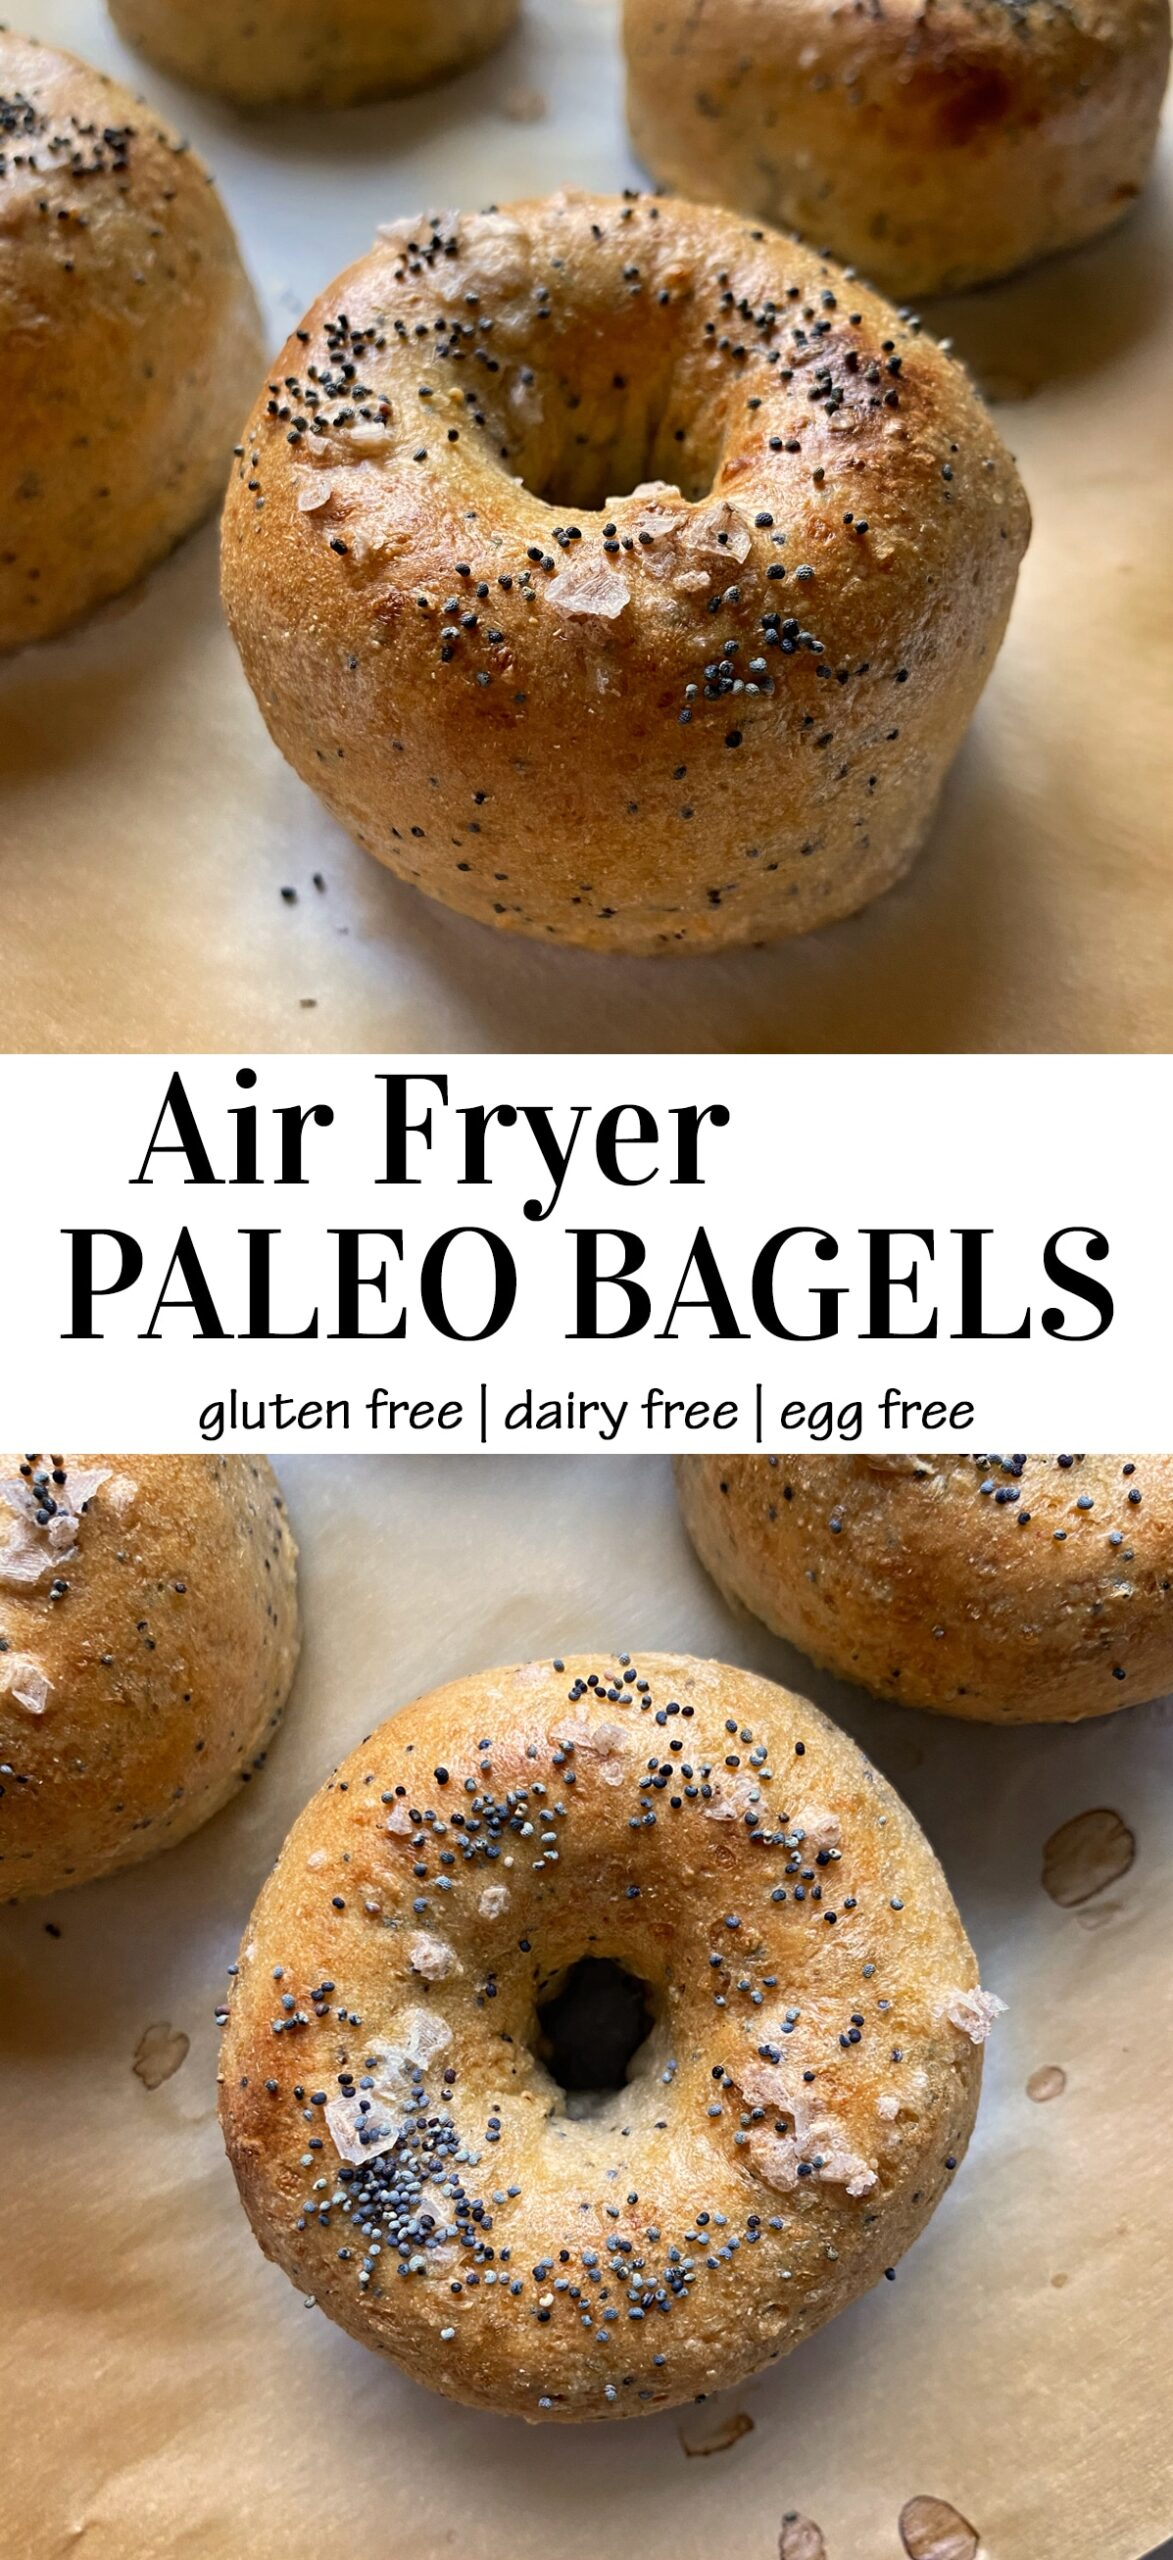 Easy-Air-Fryer-Paleo-Bagel-Recipe